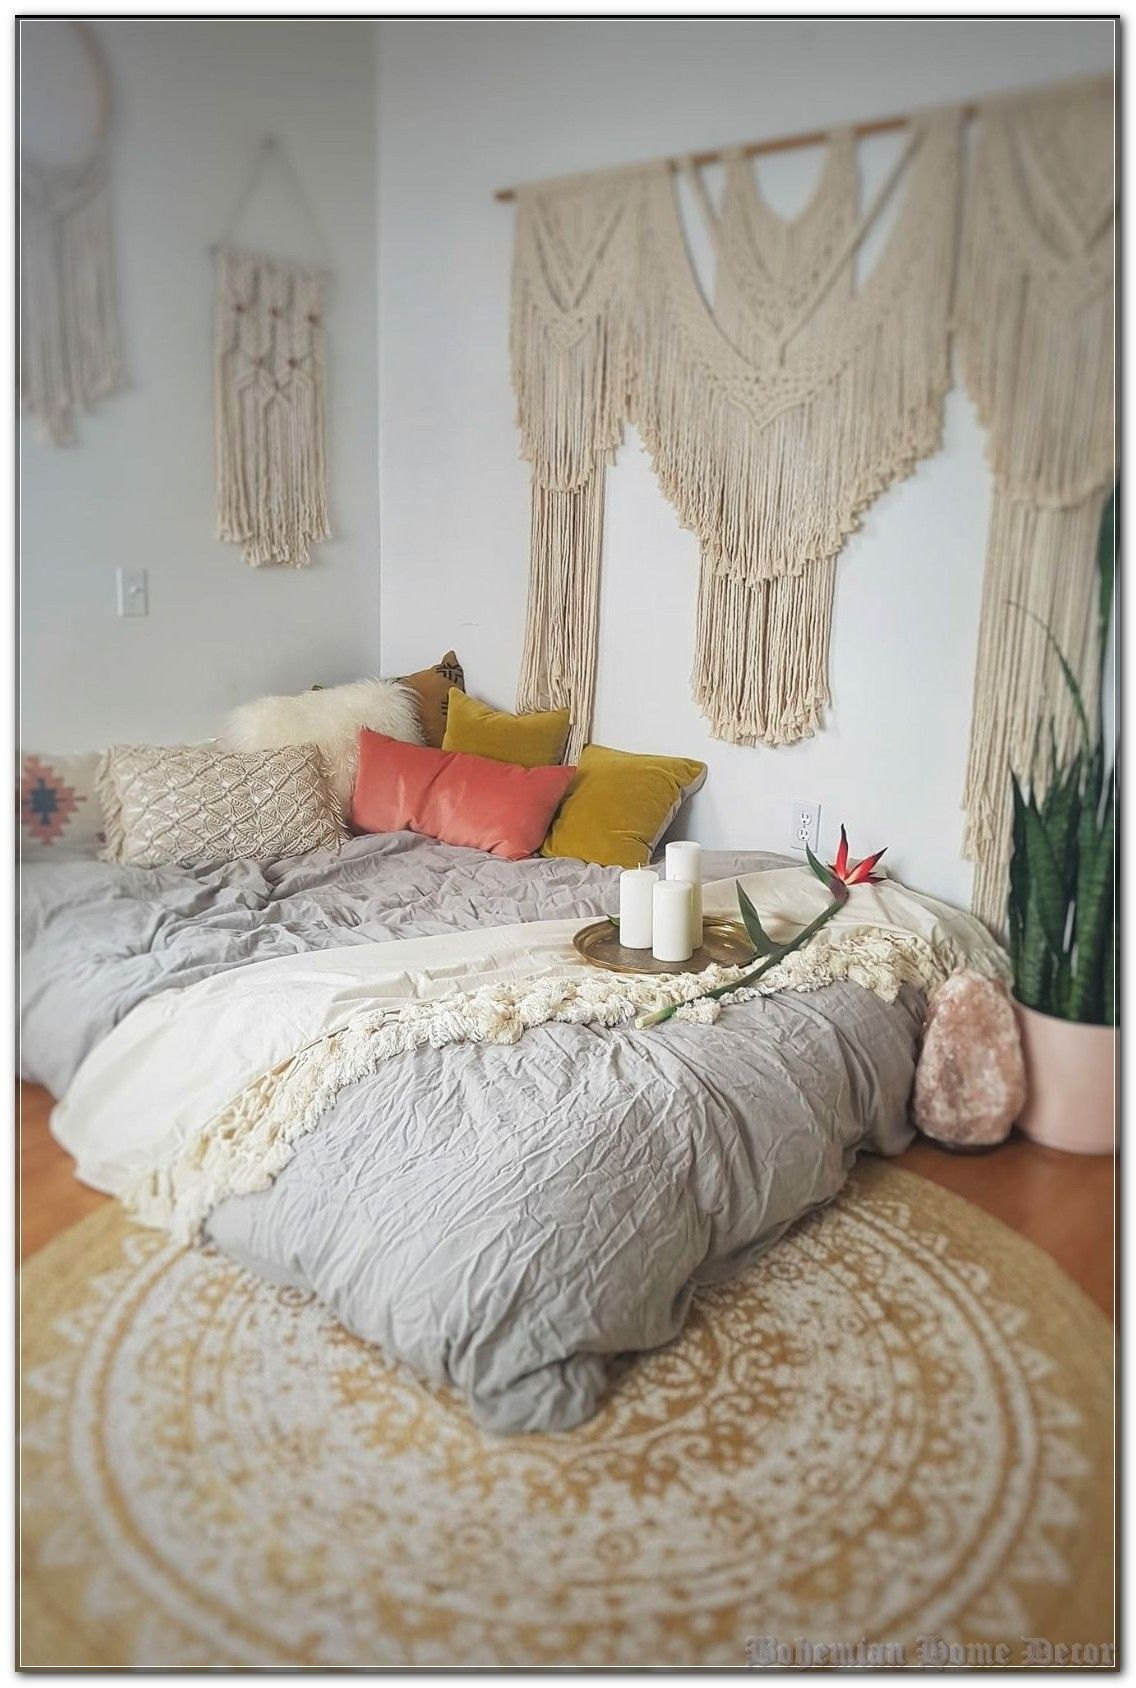 How To Make More Bohemian Home Decor By Doing Less